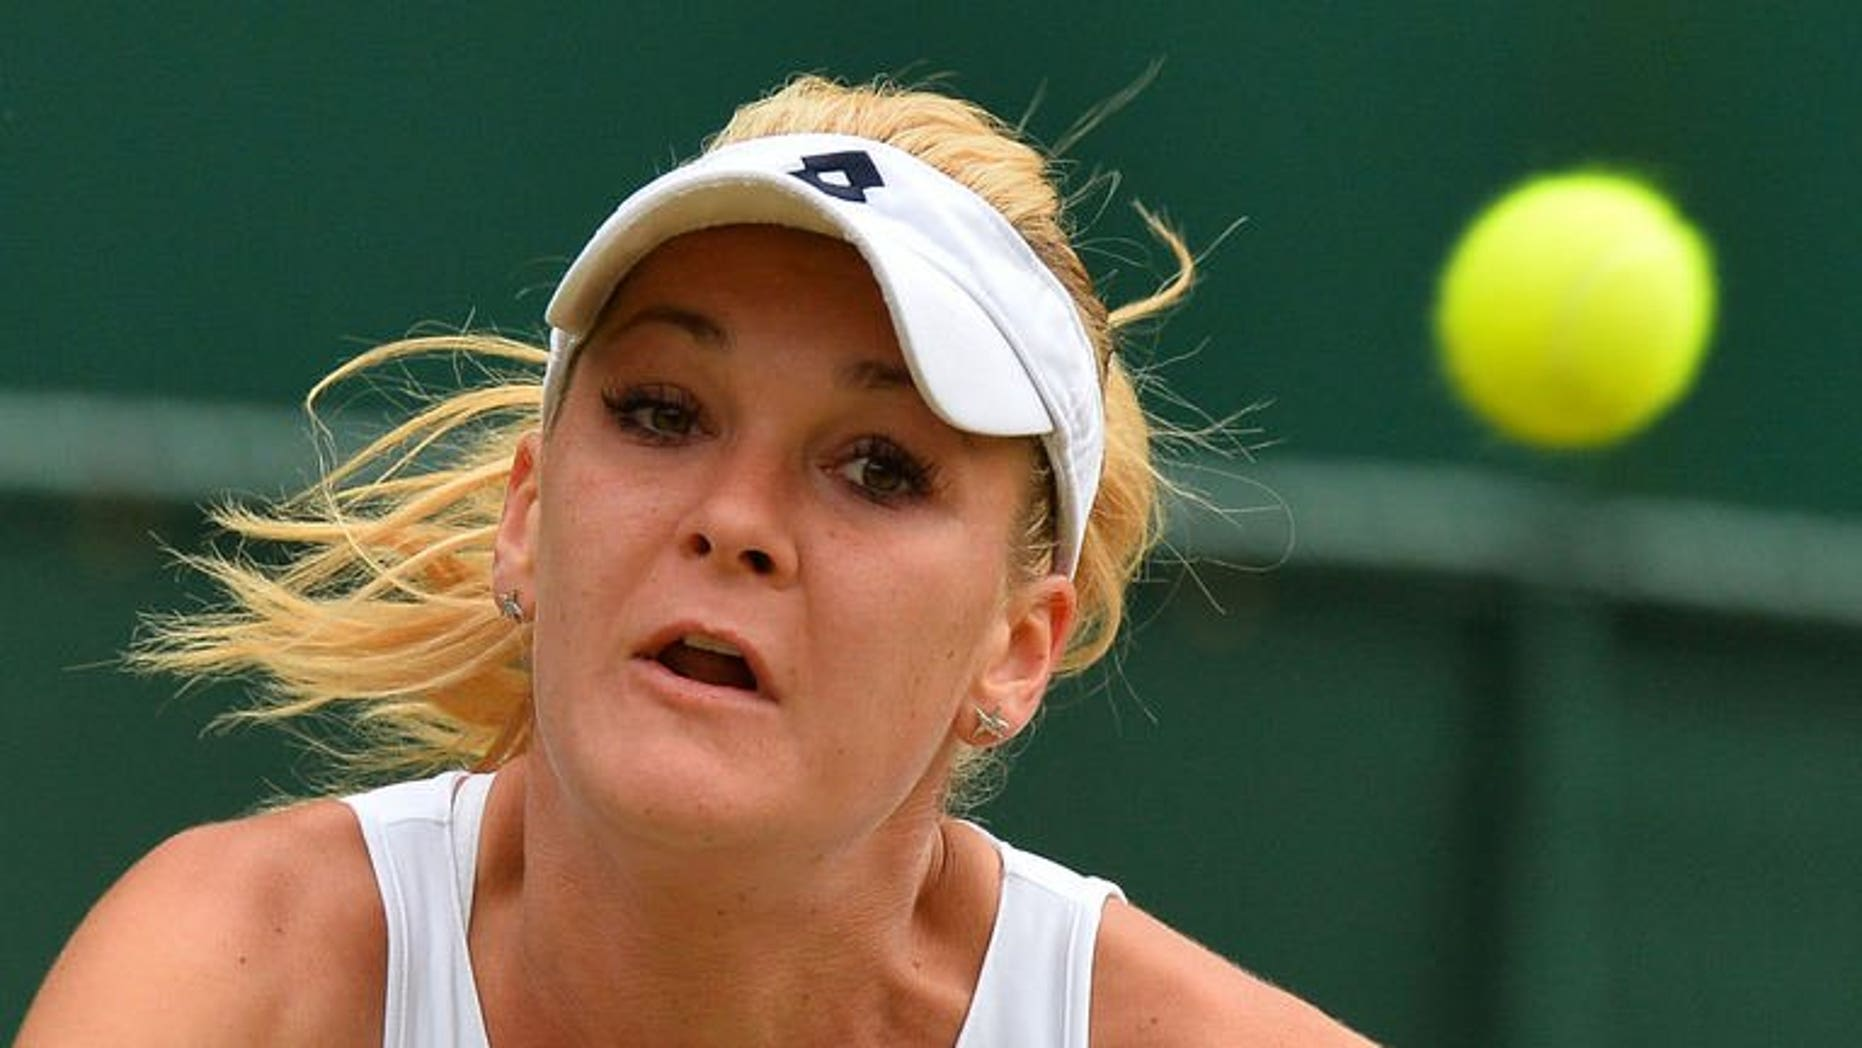 Poland's Agnieszka Radwanska eyes a return against China's Li Na during their quarter-final match at the Wimbledon Championships in southwest London, on July 2, 2013. Radwanska won 7-6 (7/5), 4-6, 6-2 in a two-hour, 43 minute contest on Centre Court.